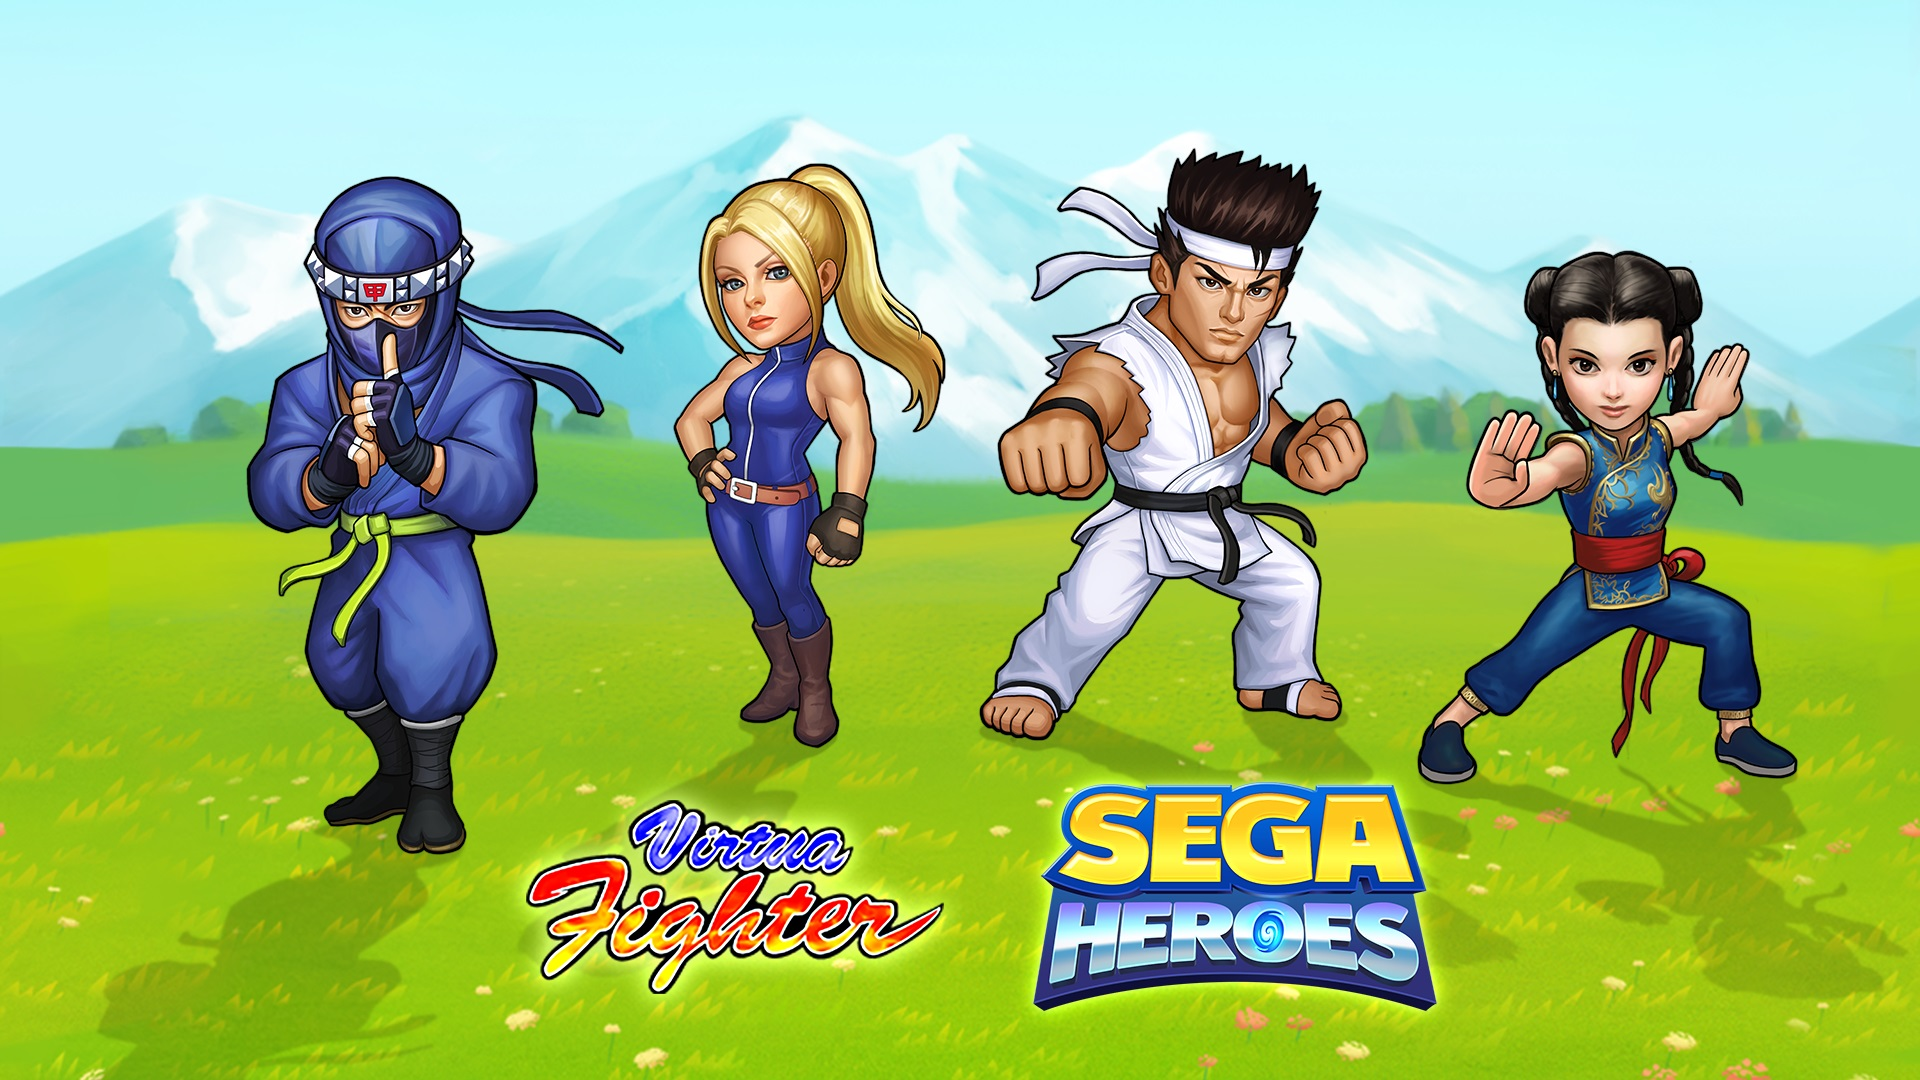 Virtua Fighter x SEGA Heroes.jpg